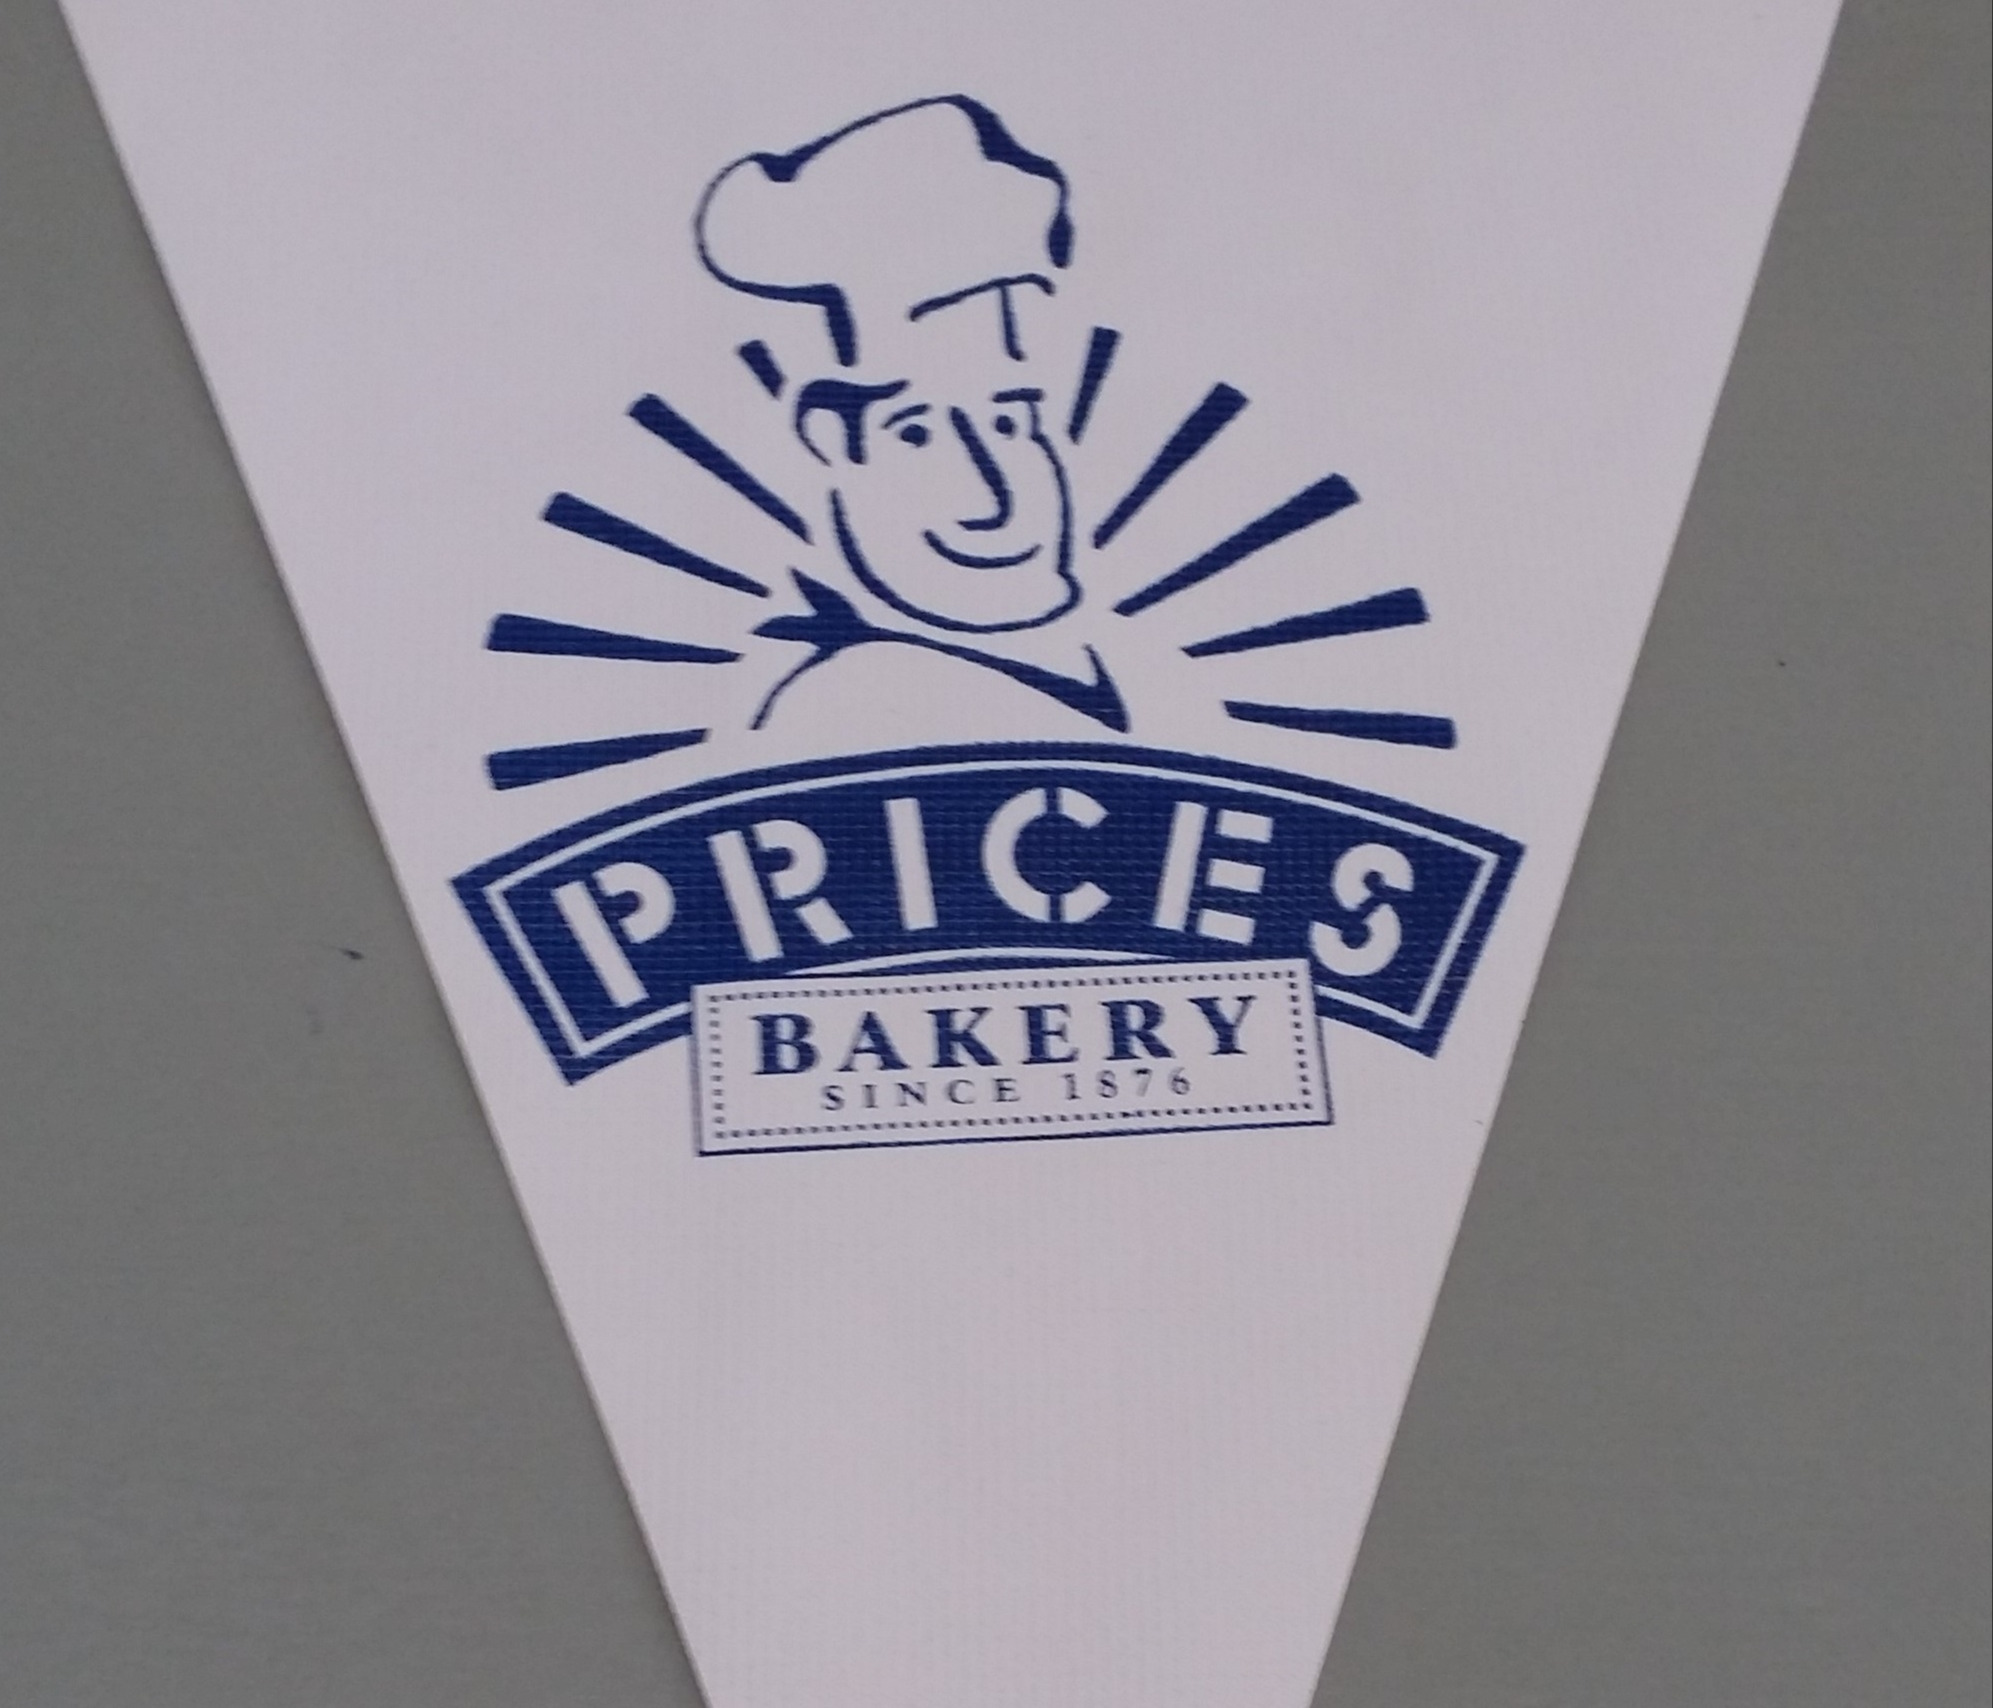 Prices Bakery